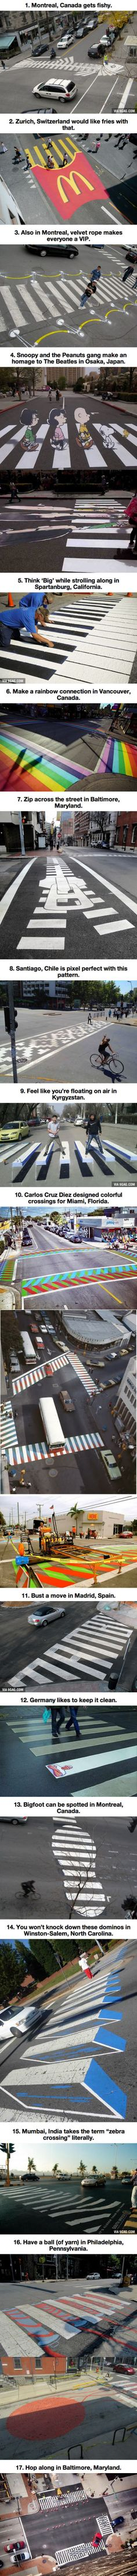 It's Safe To Say The Chicken Crossed These Road Because This Street-Artwork Is Mindblowing.